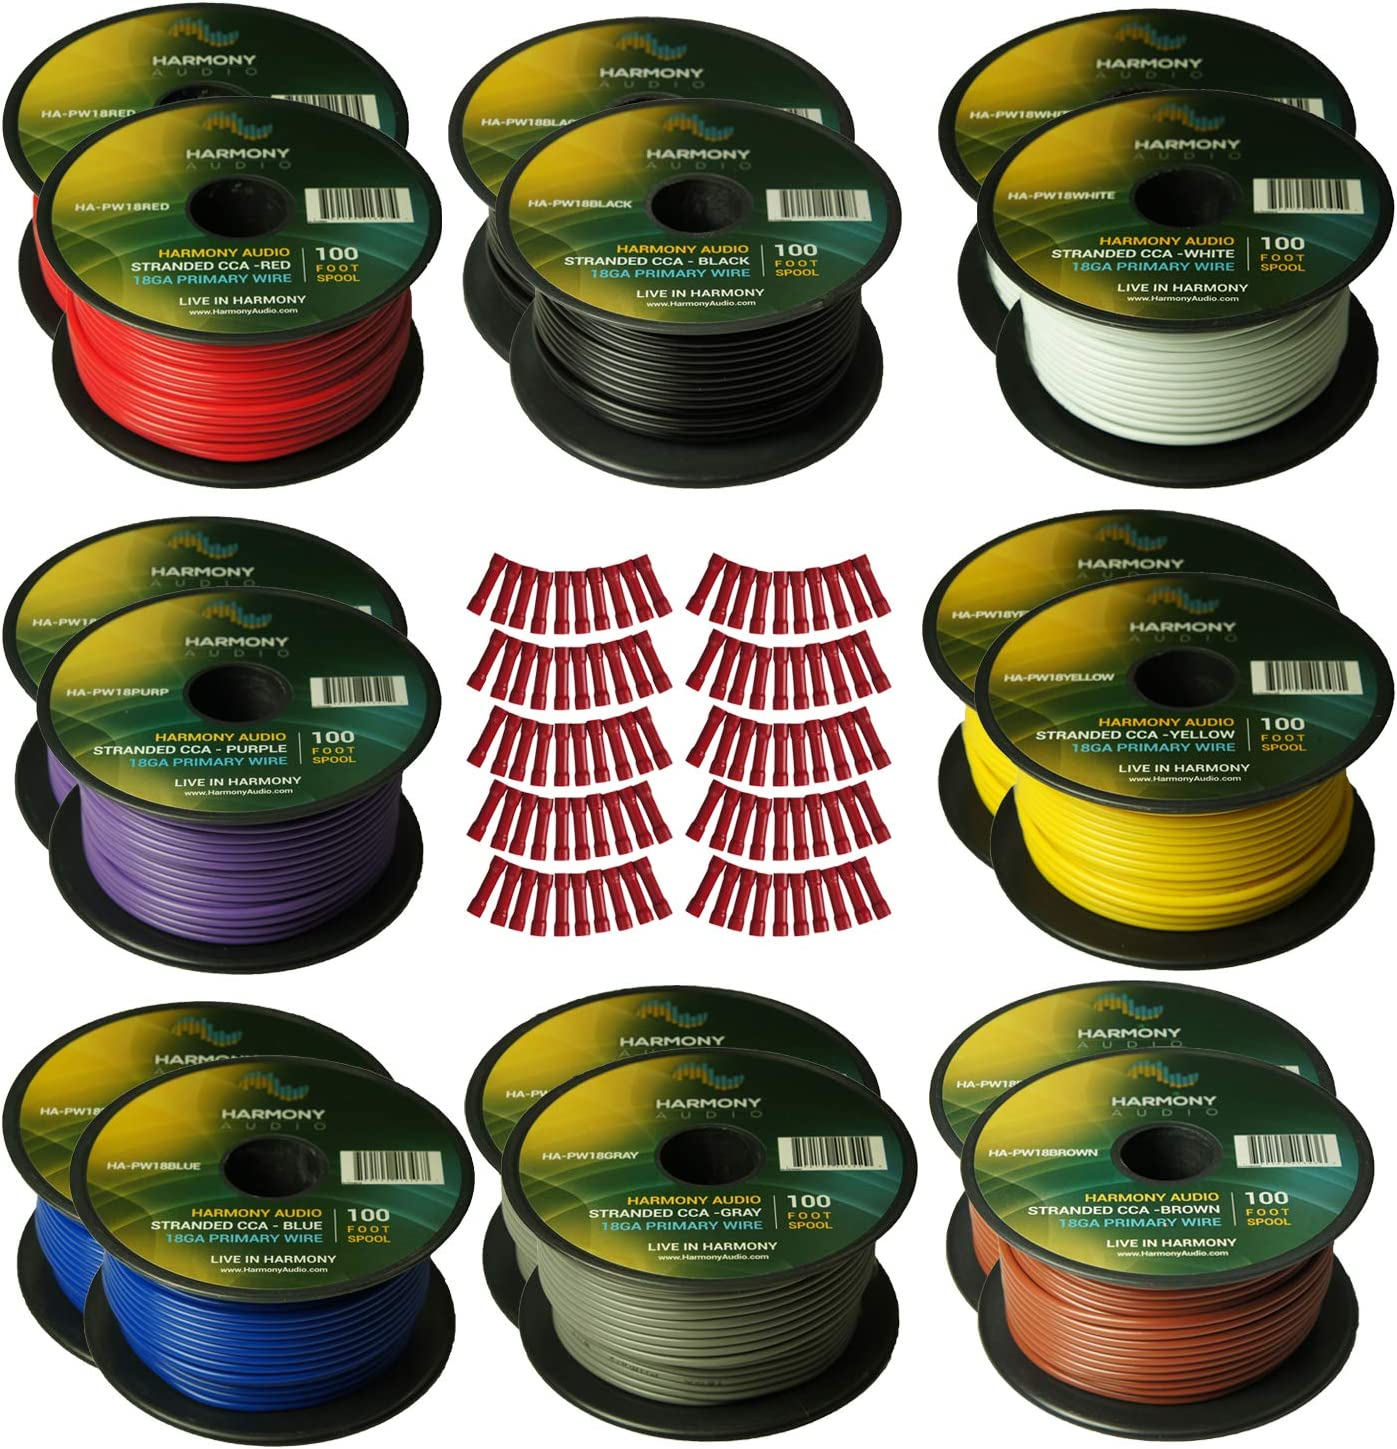 Harmony Audio Primary Single Conductor 18 Gauge Power or Ground Wire - 18 Rolls - 1800 Feet - 6 Color Mix for Car Audio/Trailer/Model Train/Remote